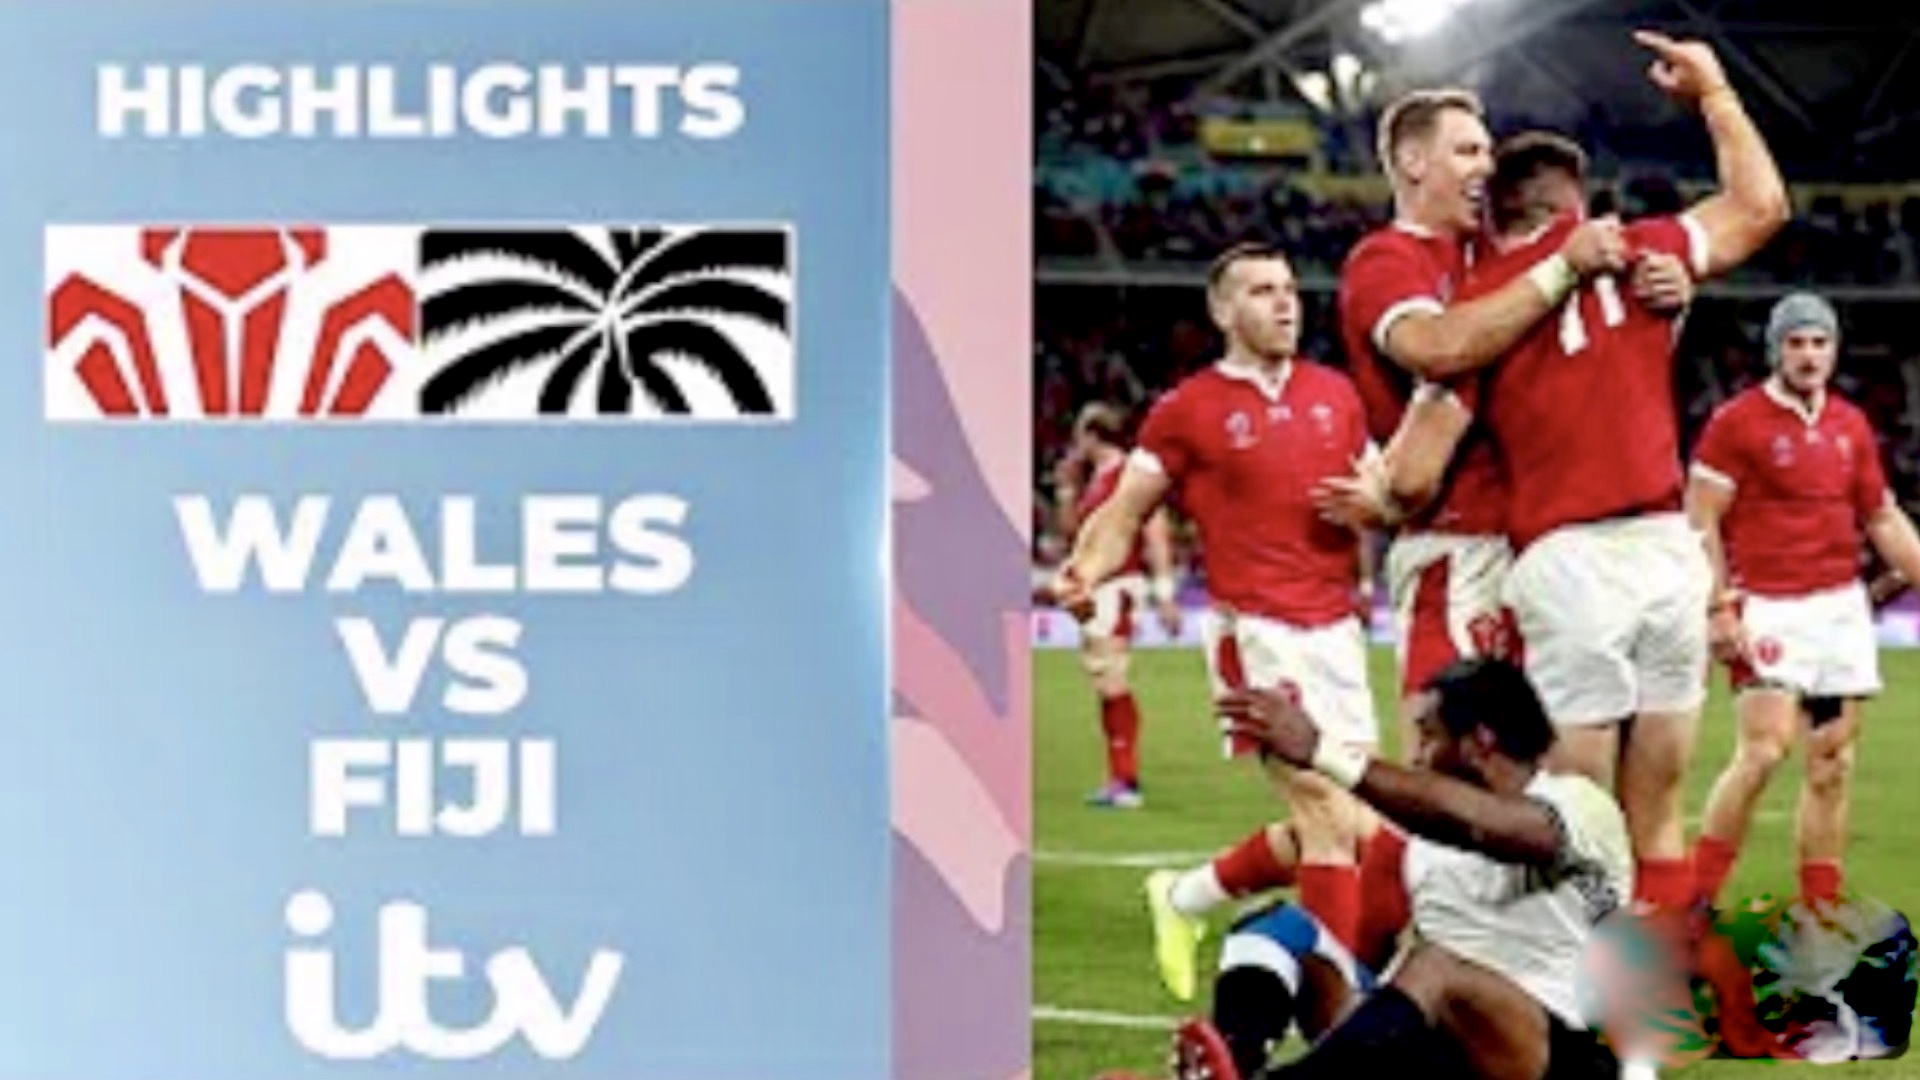 Wales v Fiji - Rugby World Cup 2019